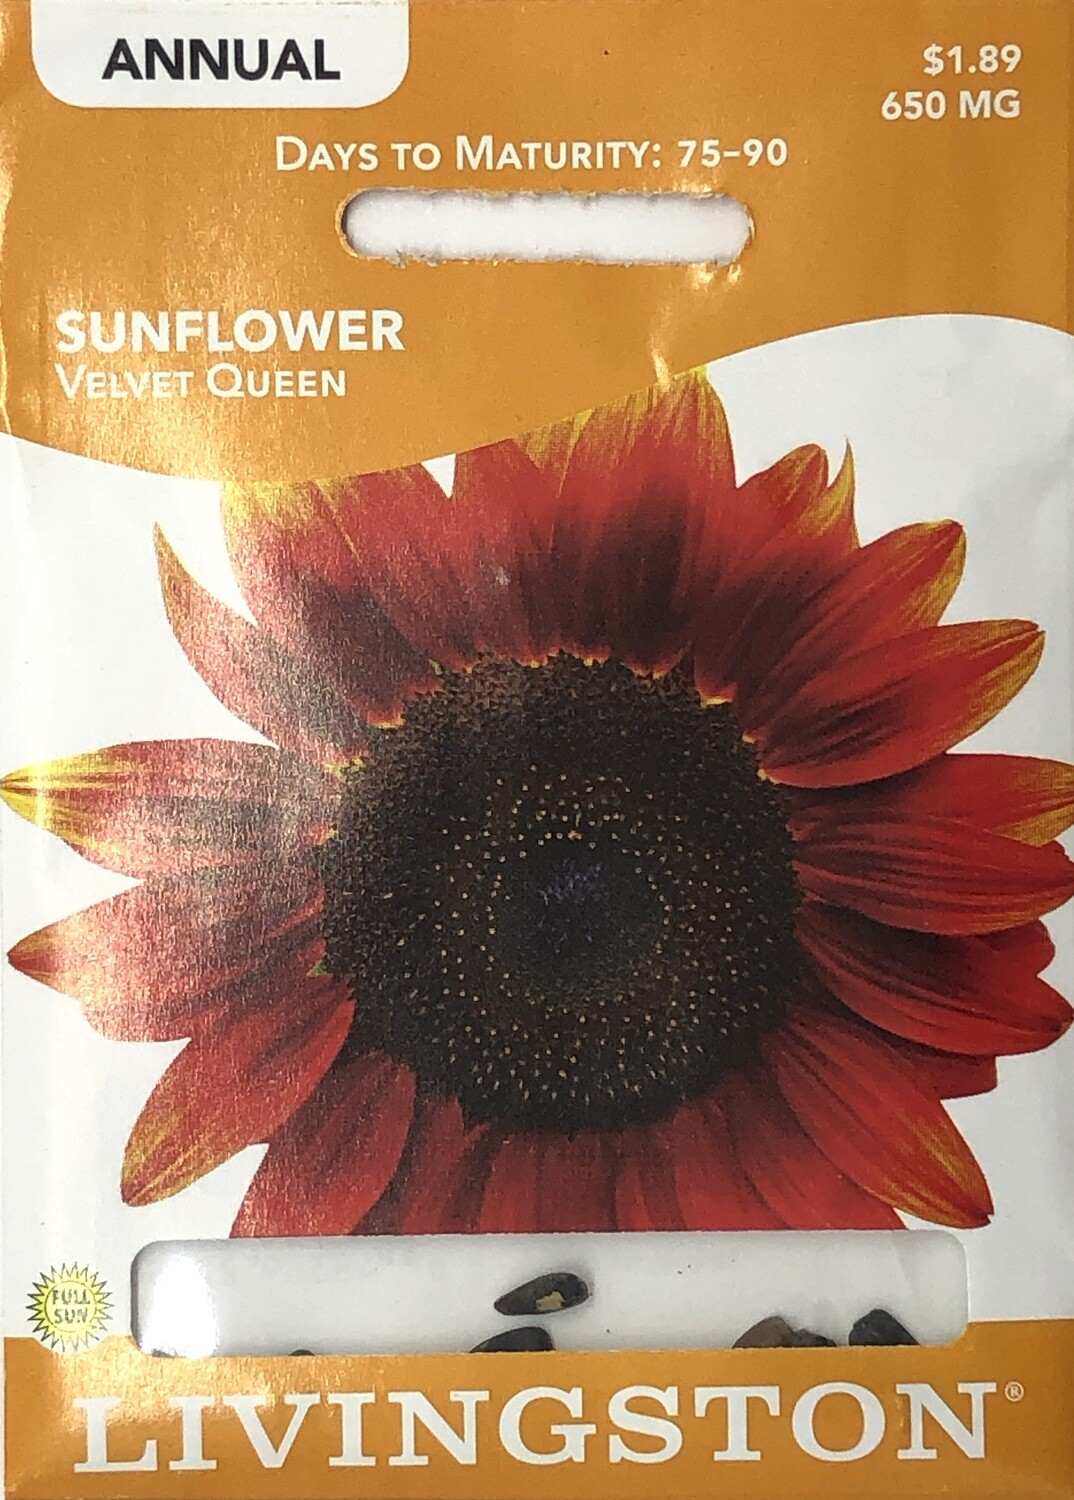 SUNFLOWER - VELVET QUEEN